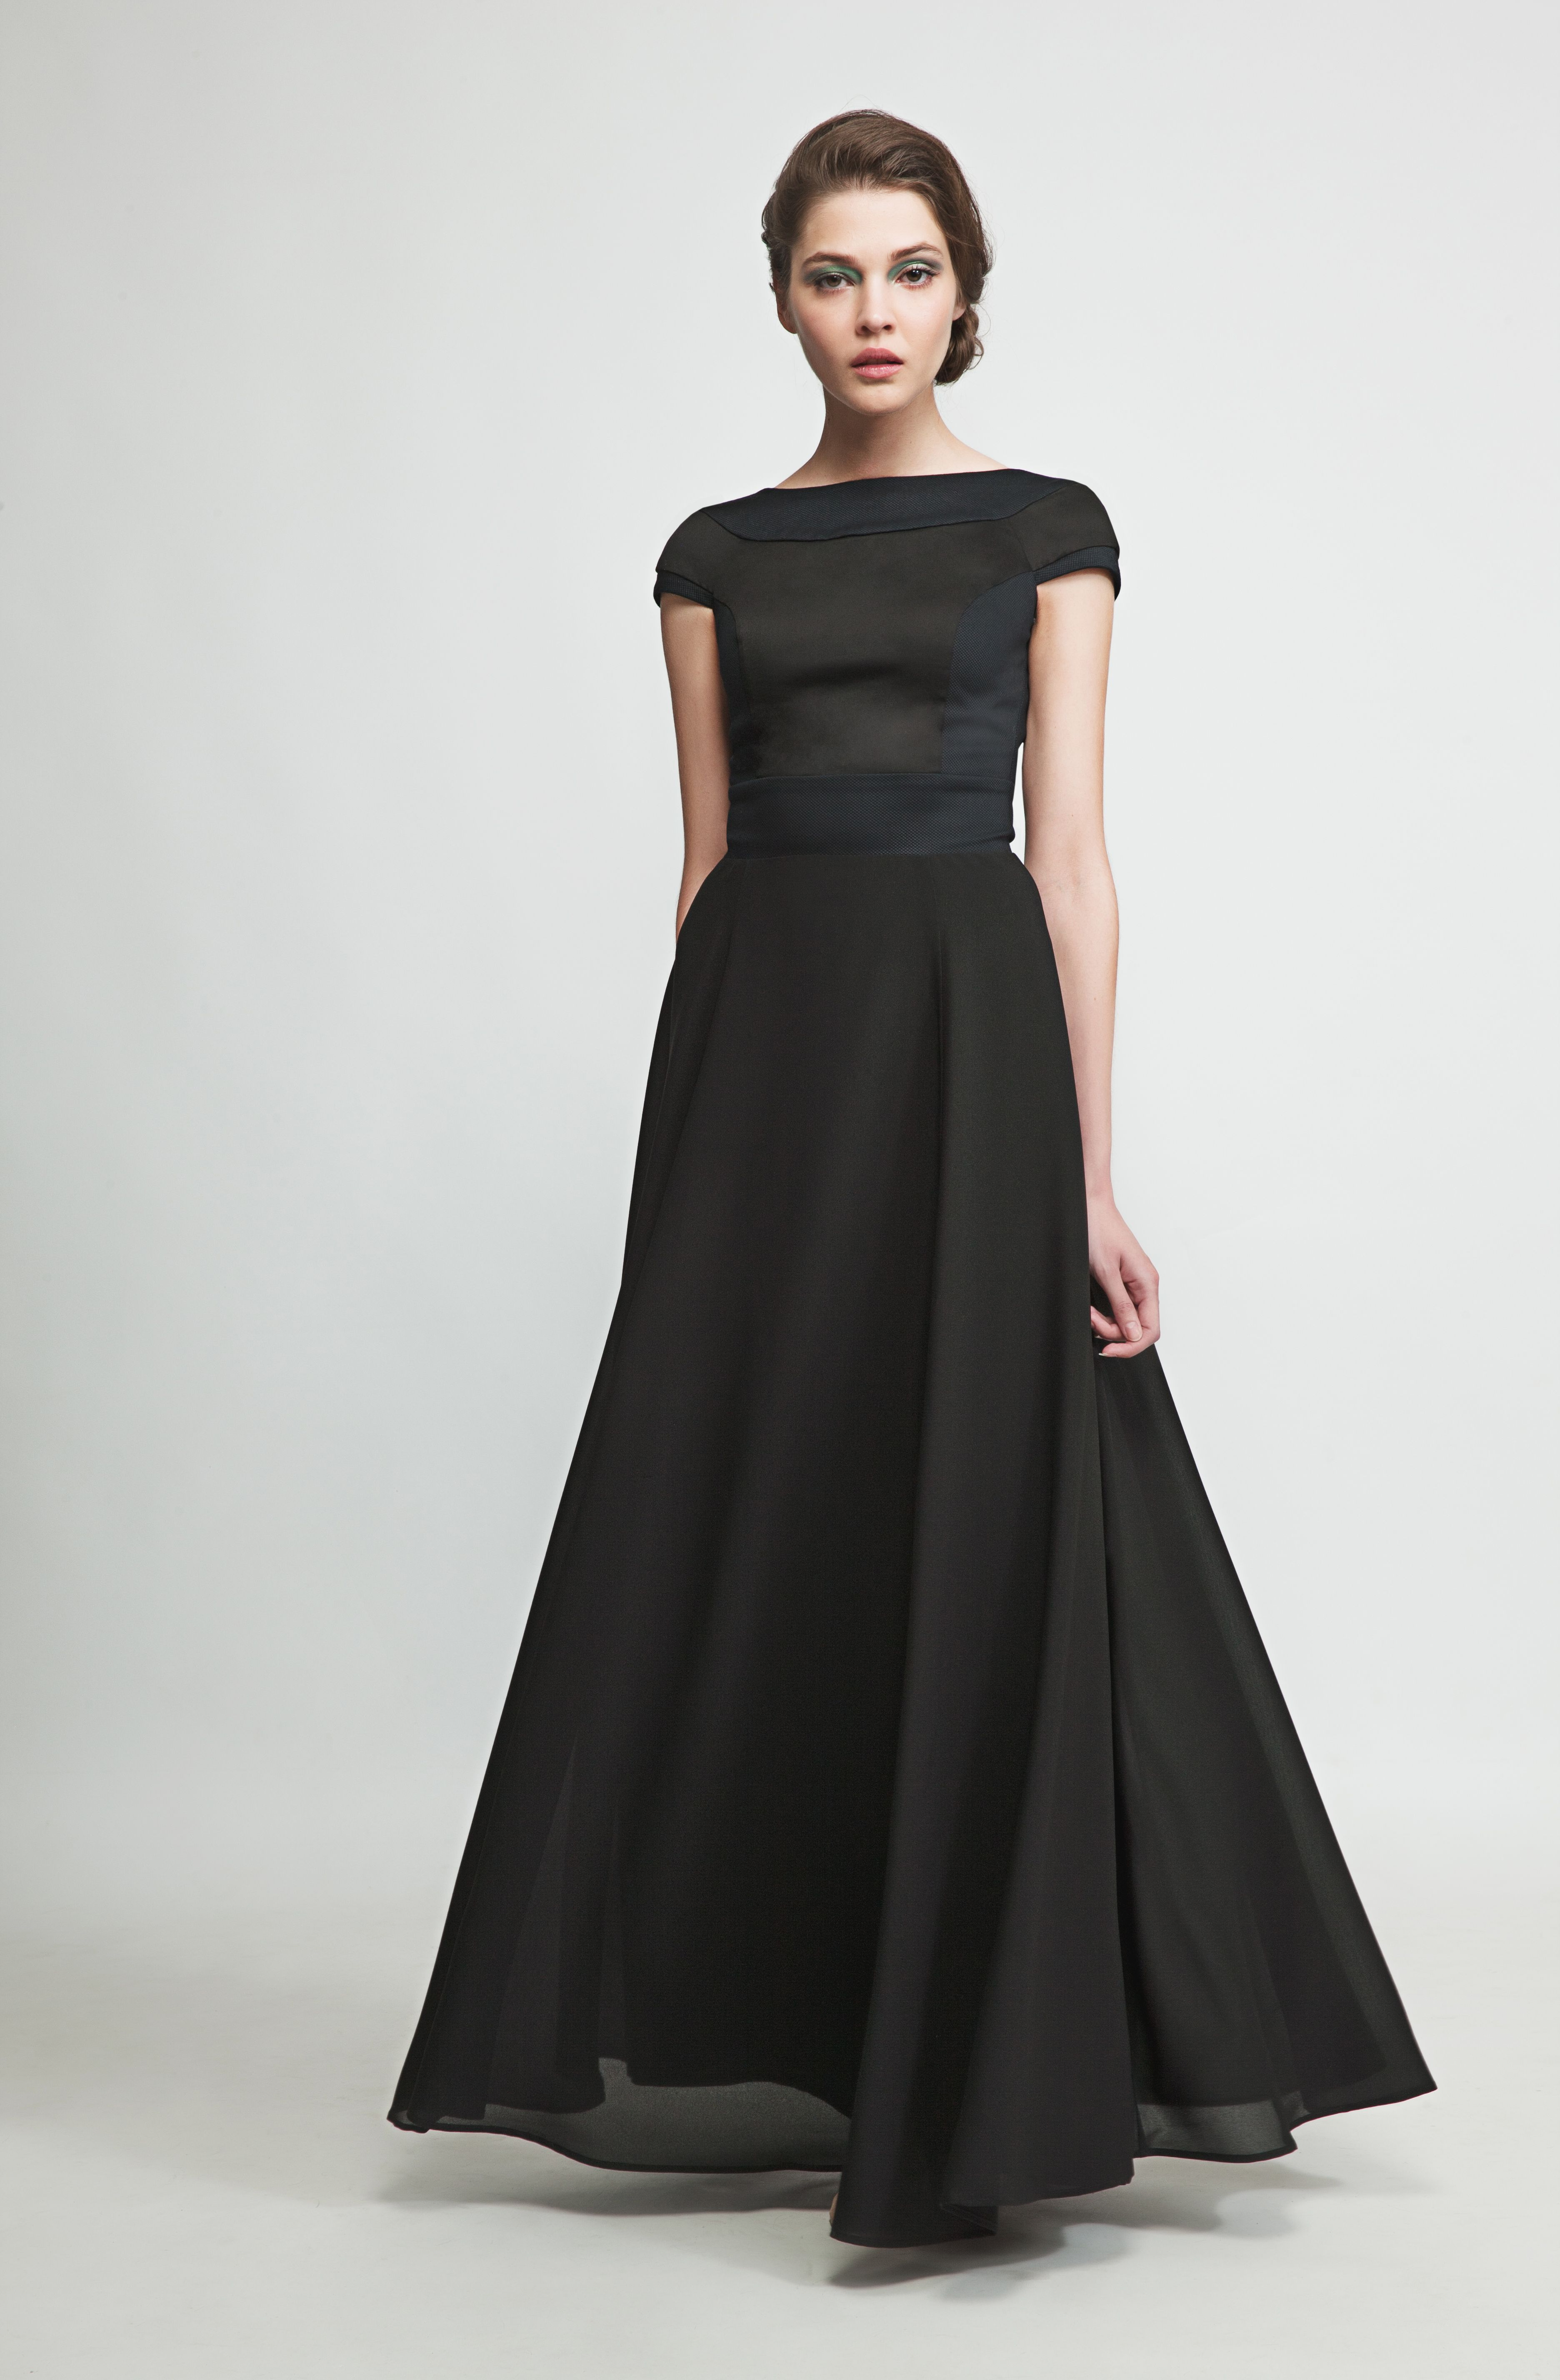 This flowing maxidress in elegant black will make you stand out in